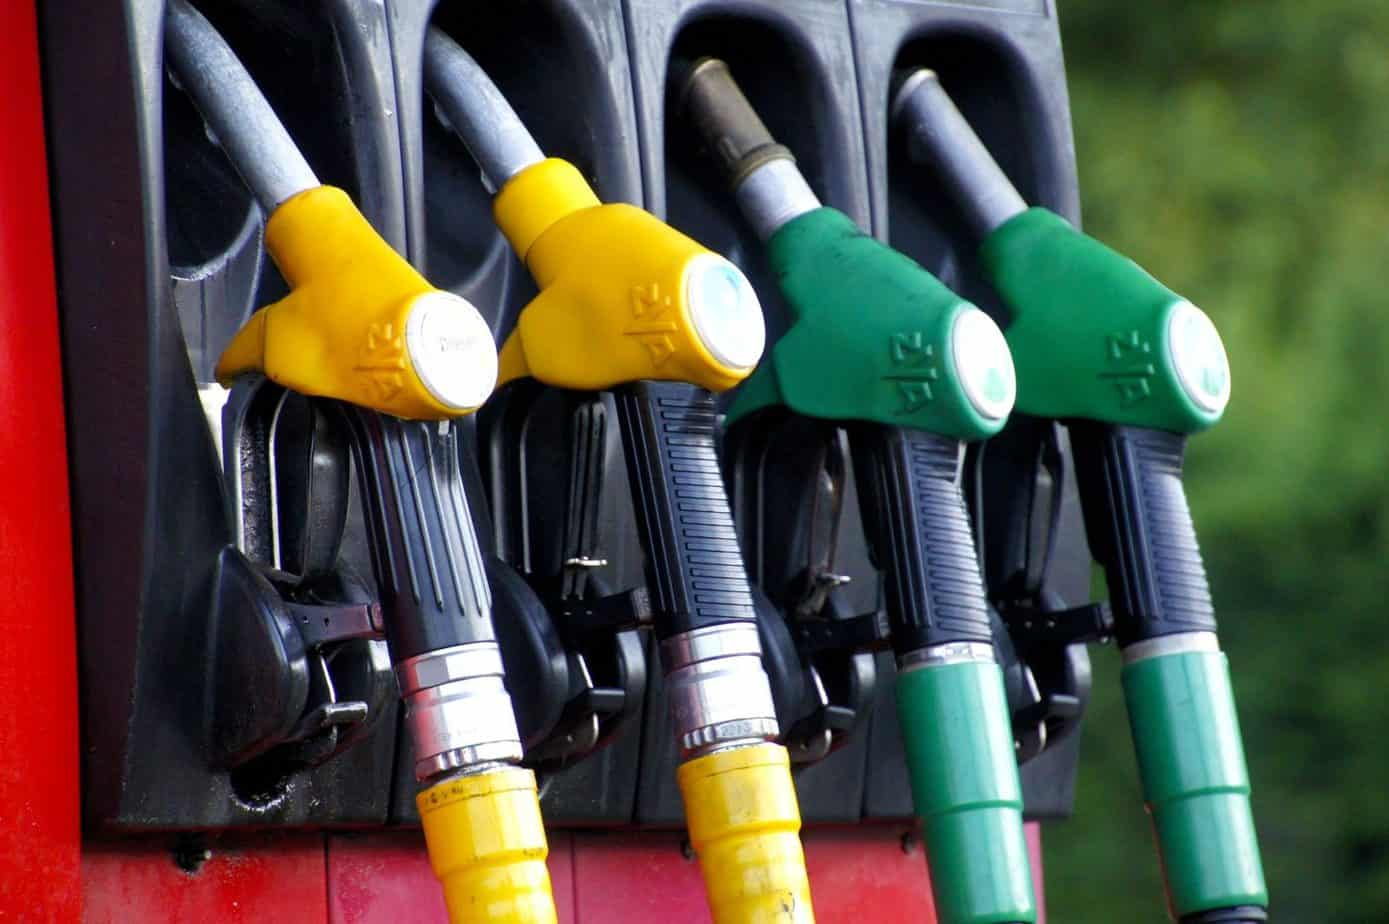 How to save money on fuel – 5 top tips